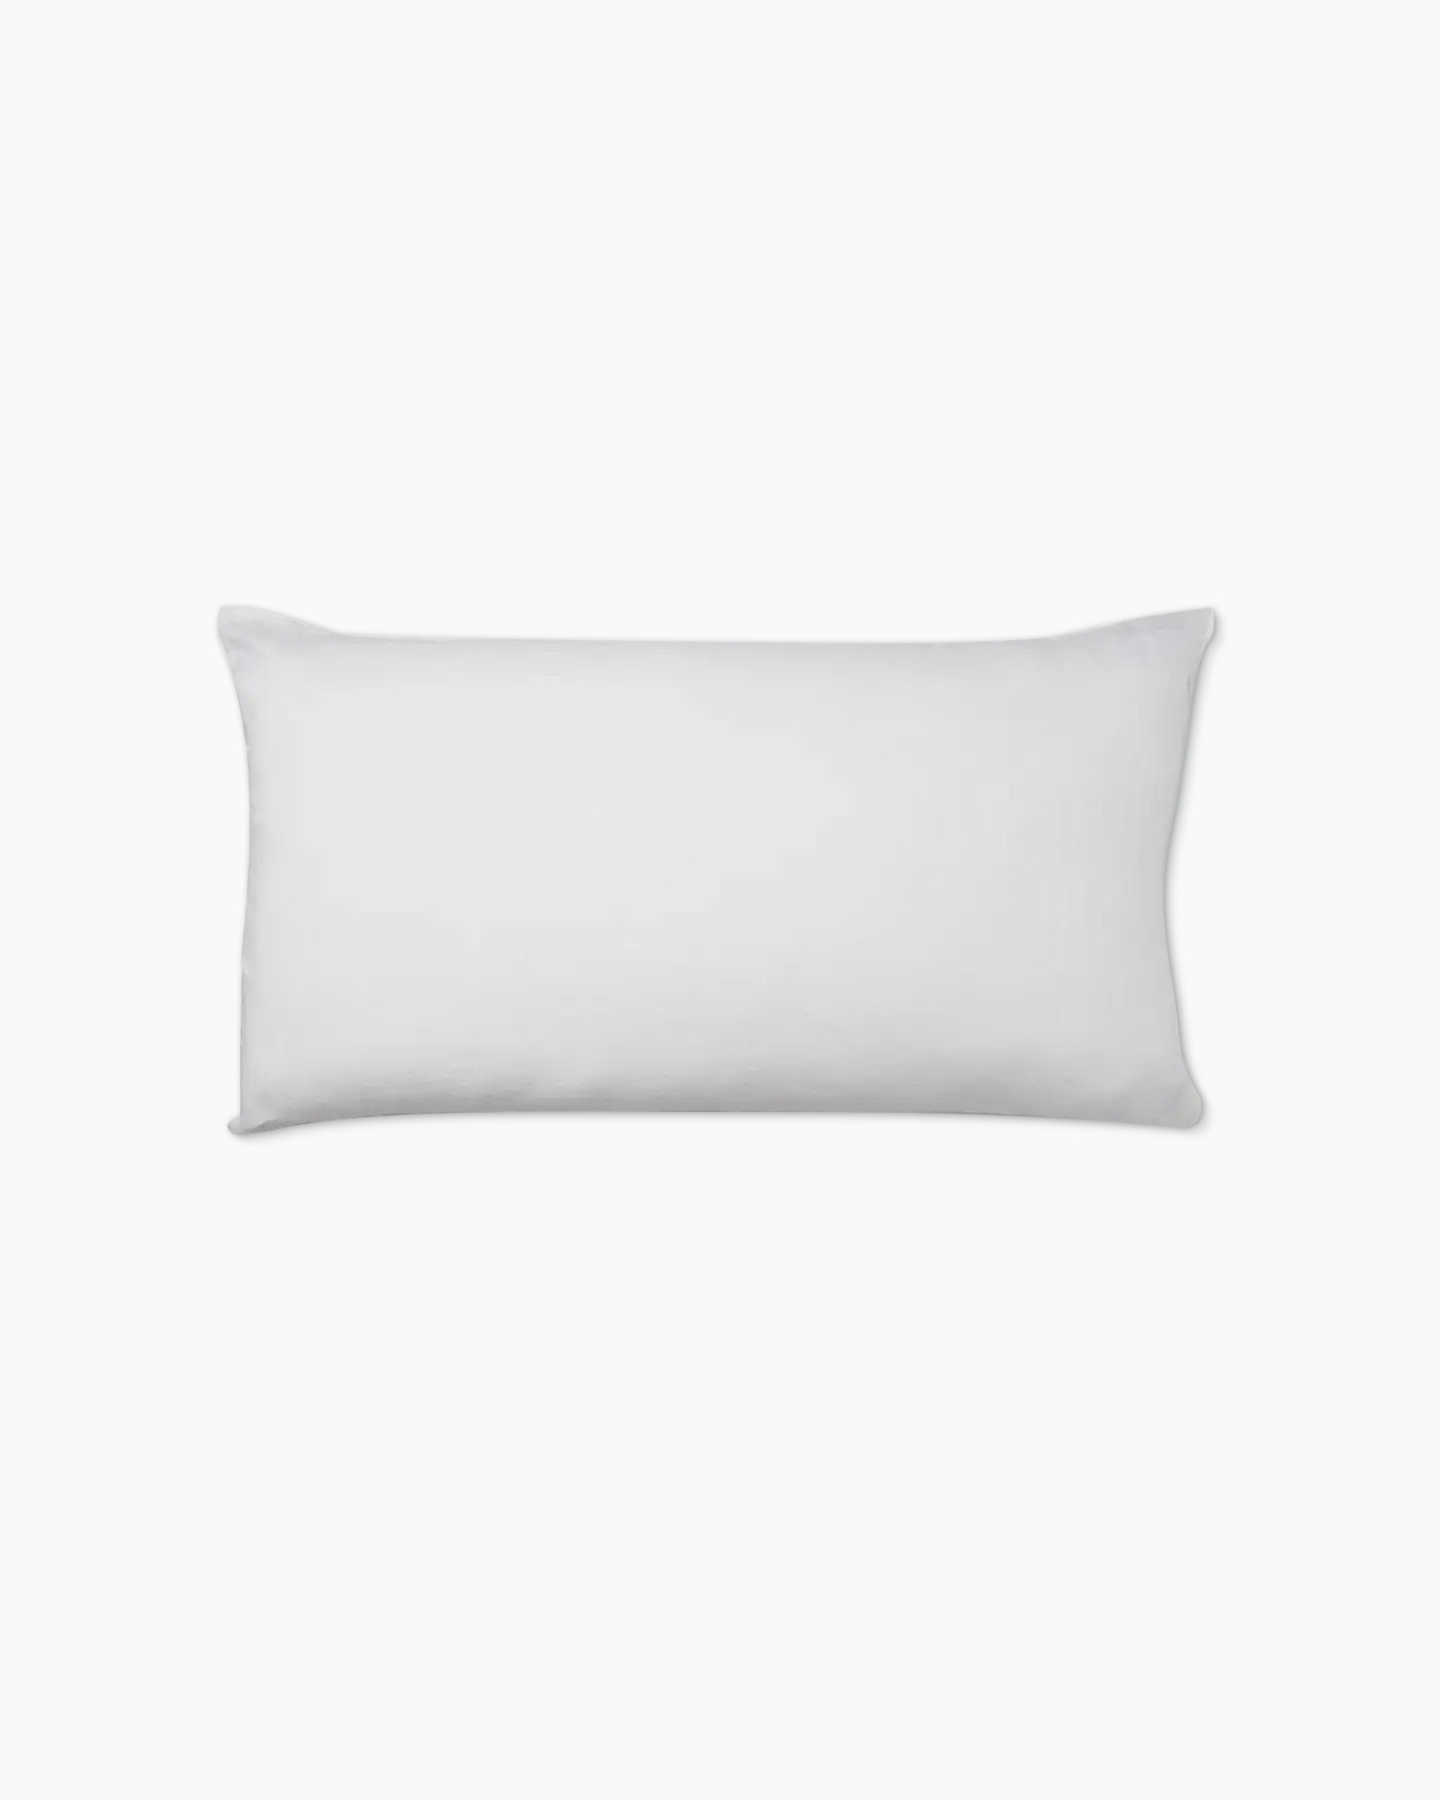 Pair With - Belgian Linen Sham Set - White